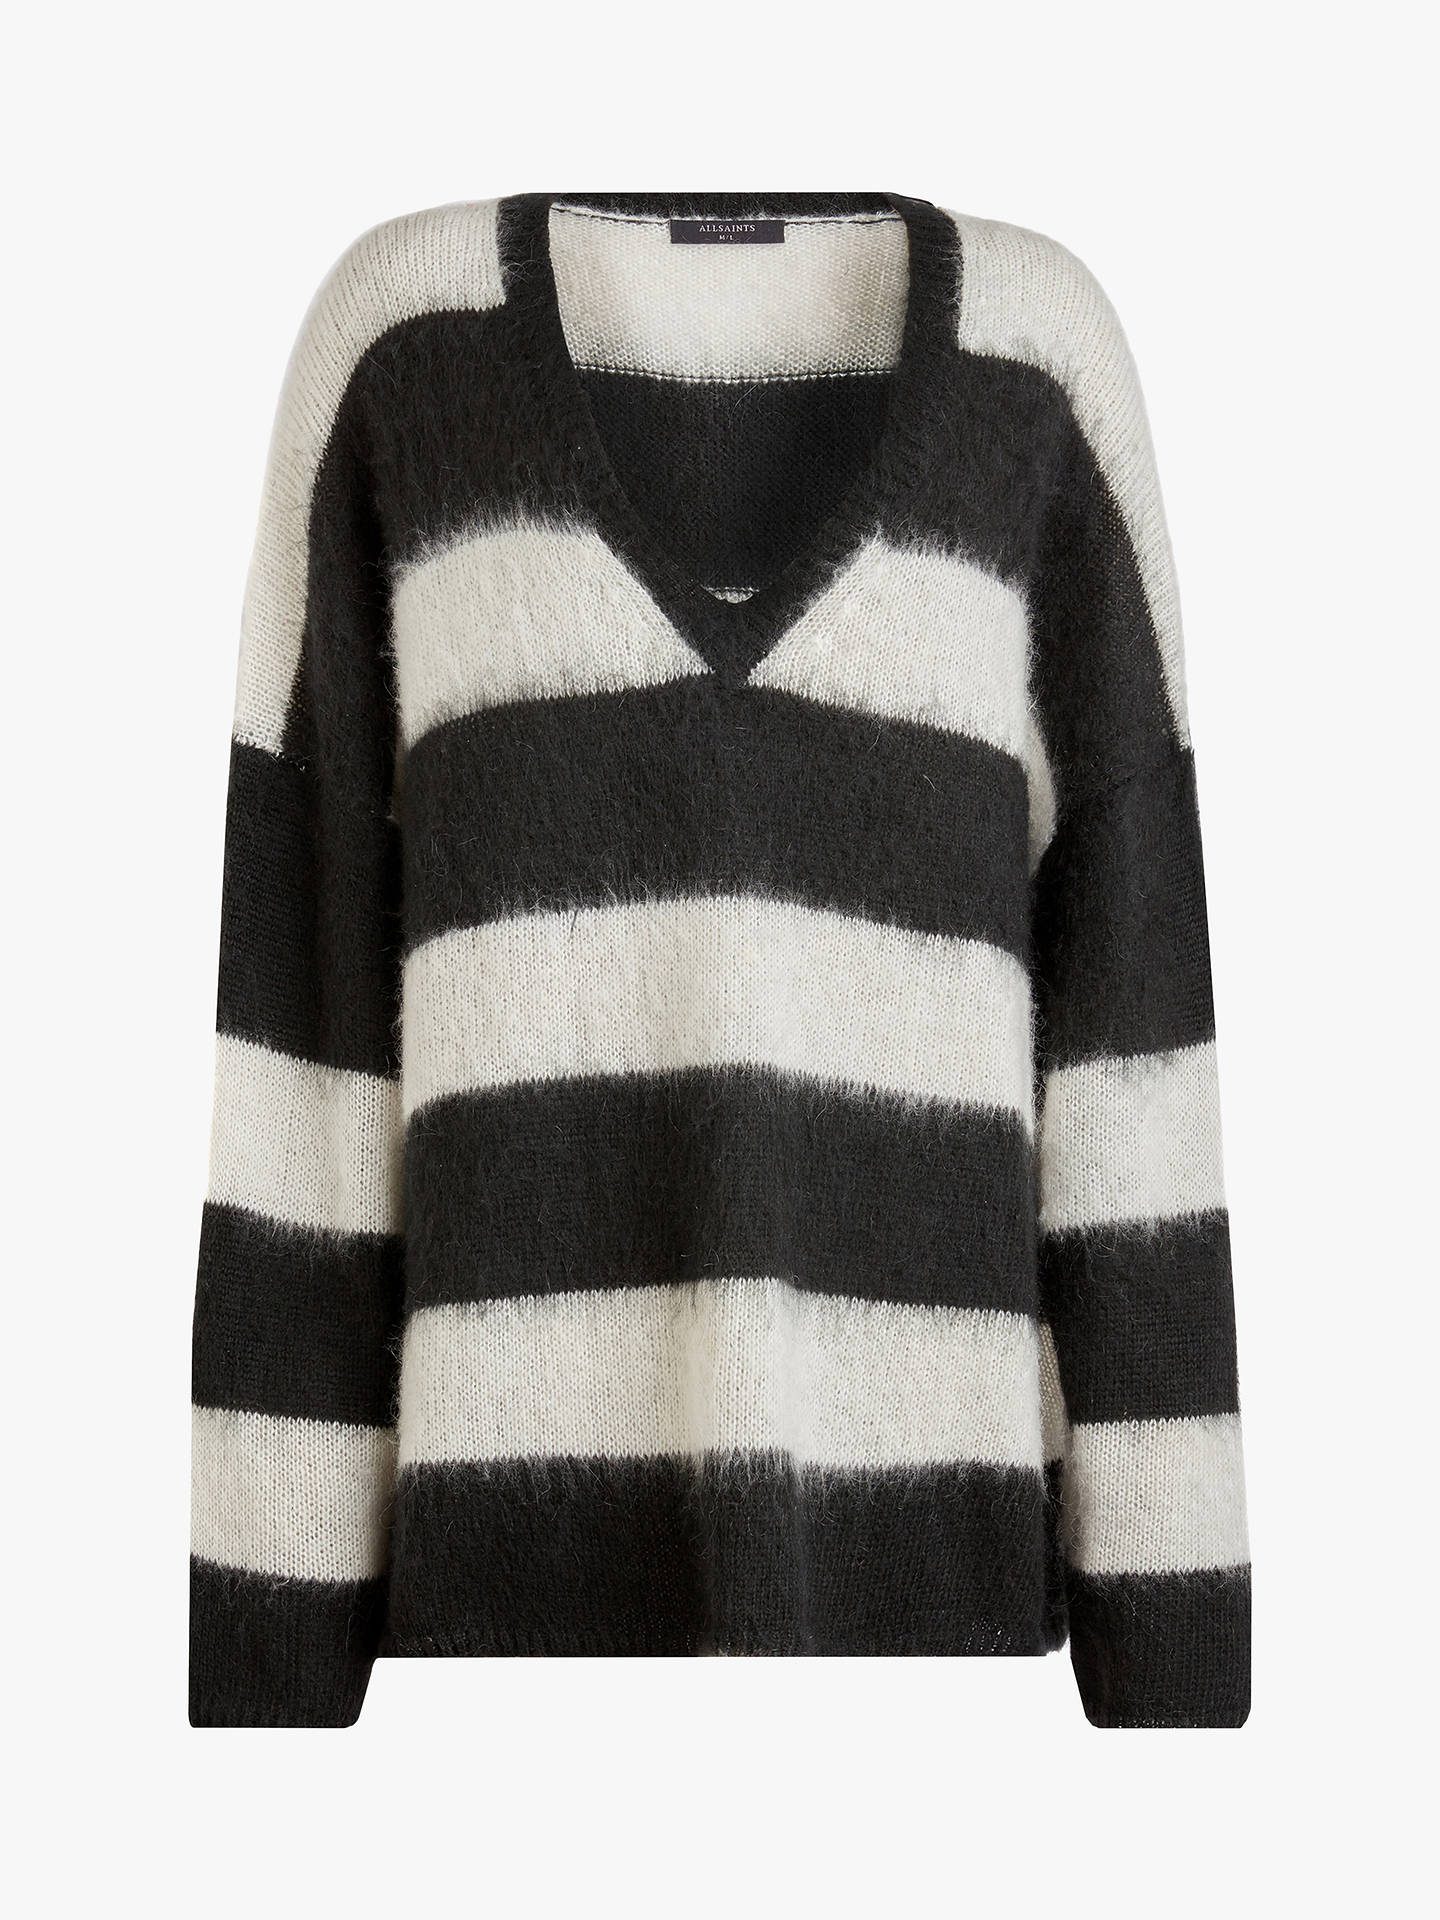 AllSaints Byers V Neck Striped Jumper, BlackCream White at